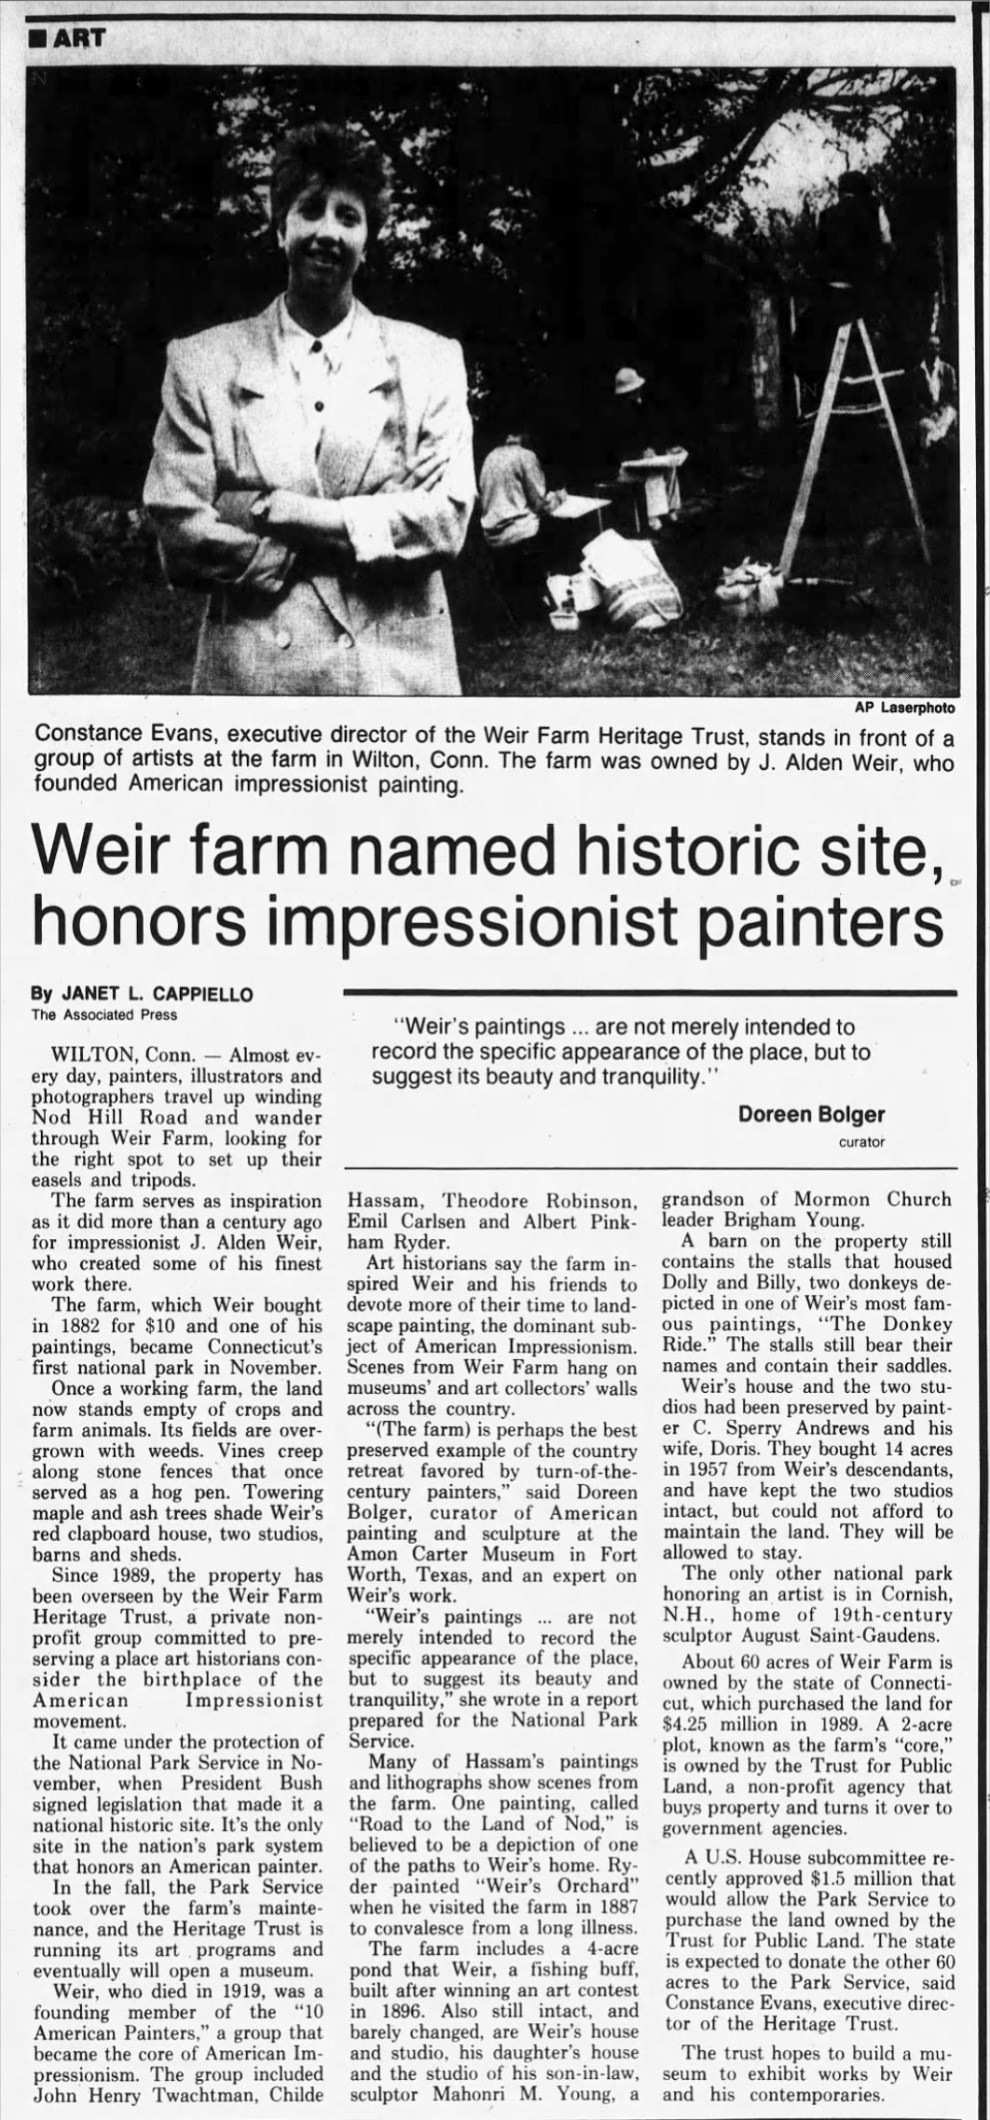 """Northwest Herald, Woodstock, IL, """"Weir farm named historic site honors impressionist painters"""" by Janet L. Cappiello, Thursday, November 28, 1991, Main Edition, page 45, not illustrated"""